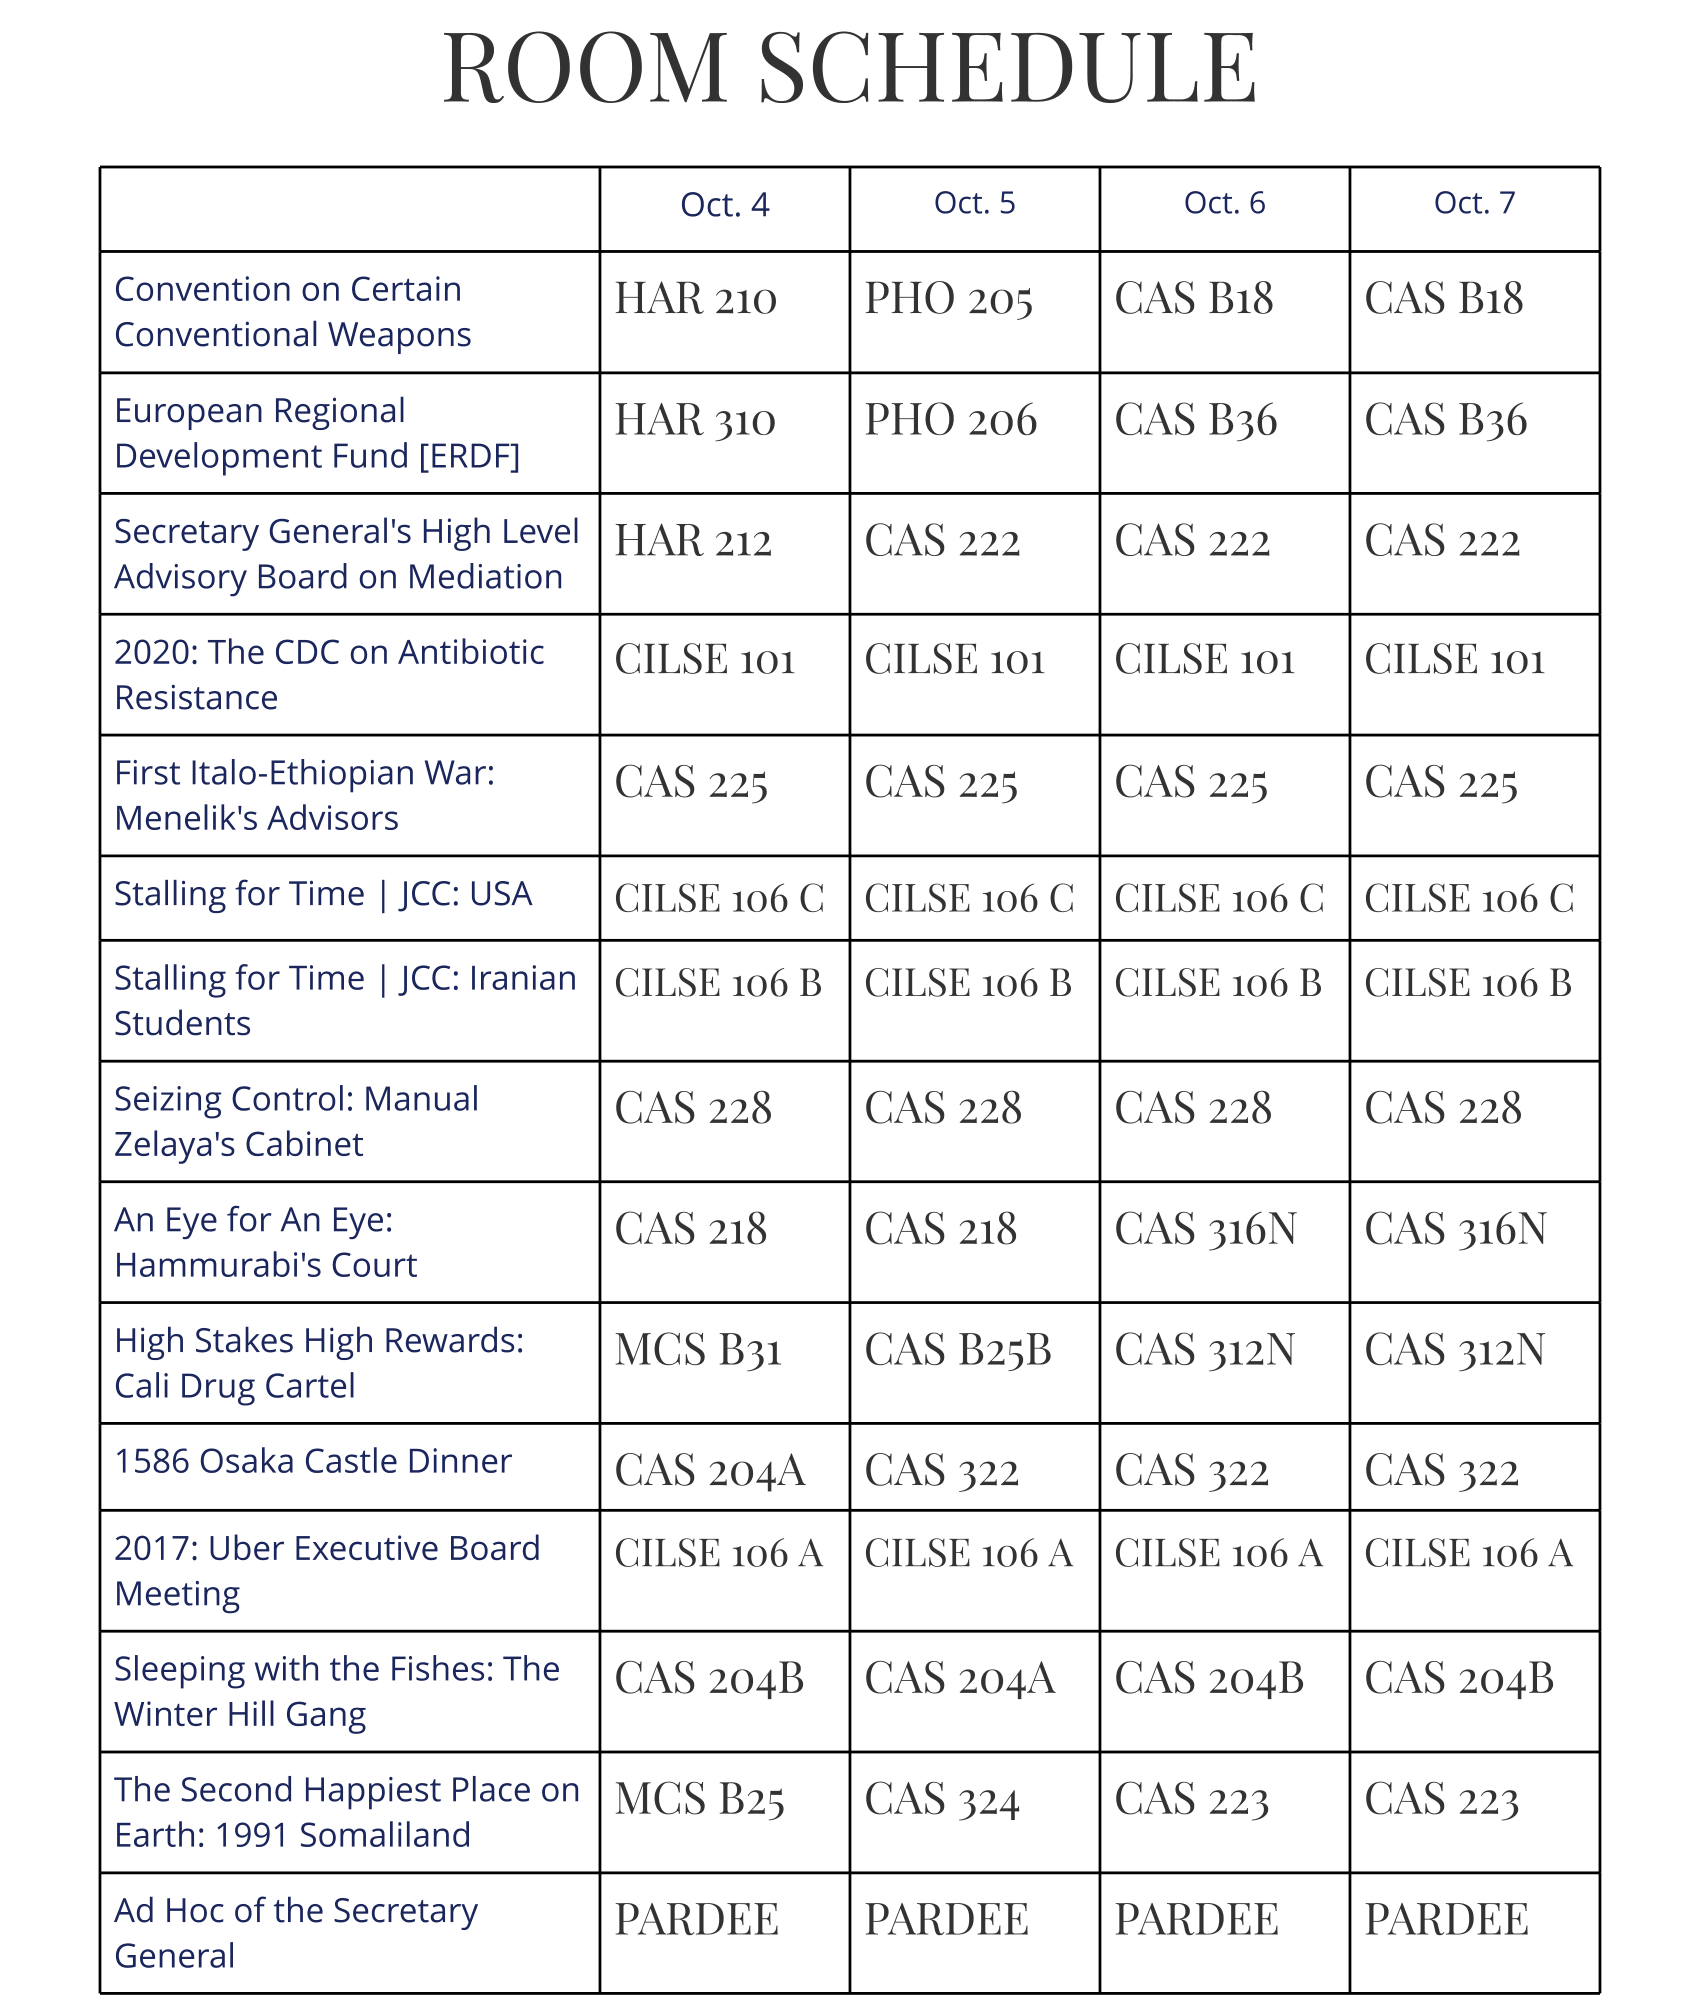 schedule png-1.png